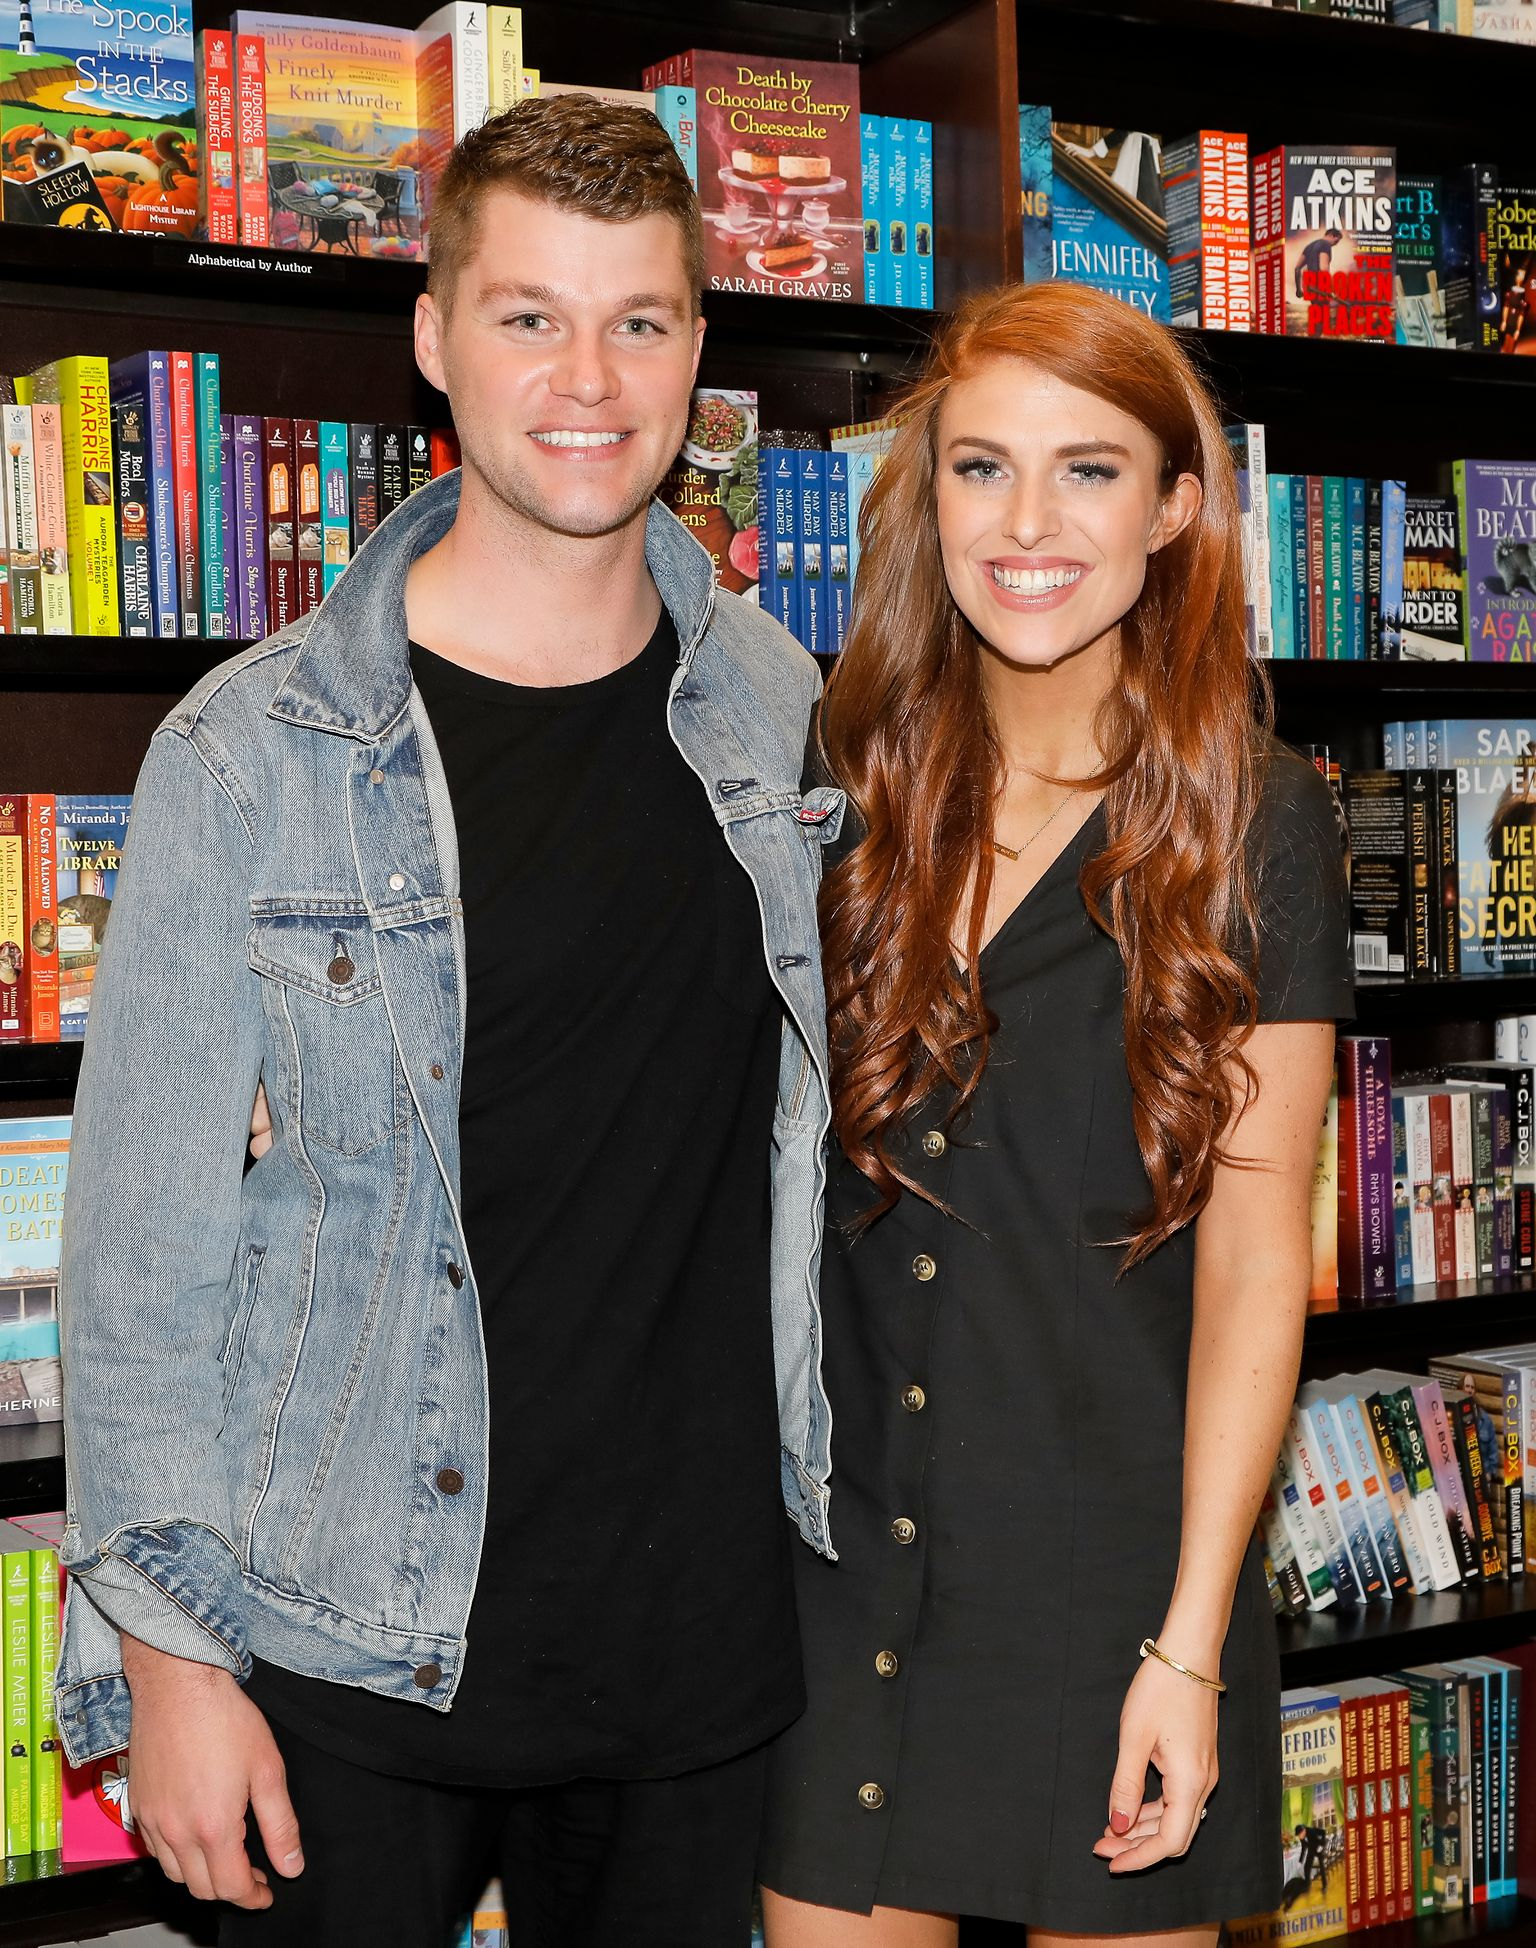 Jeremy Roloff and Audrey Roloff celebrate their new book 'A Love Letter Life' at Barnes & Noble at The Grove on April 10, 2019 in Los Angeles, California.| Photo: getty Images